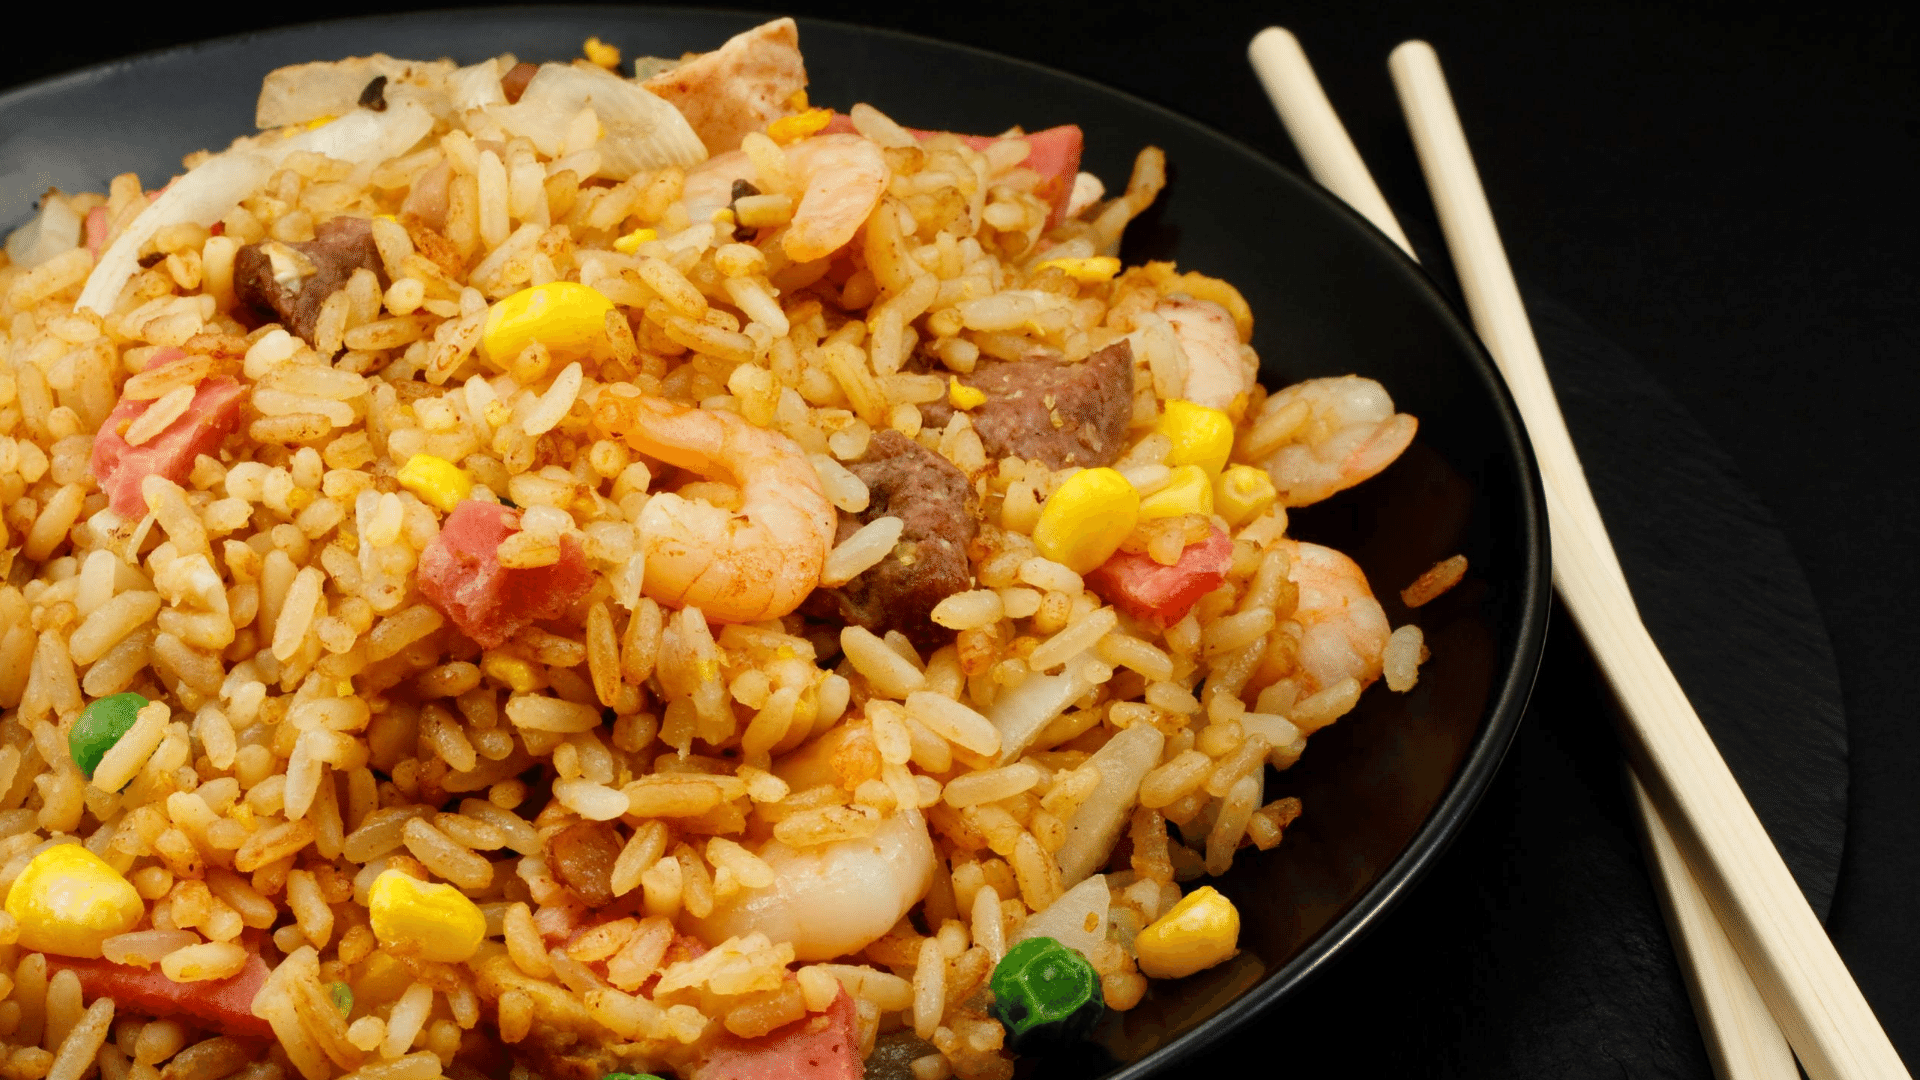 friedrice - Can eating fried rice everyday kill you?